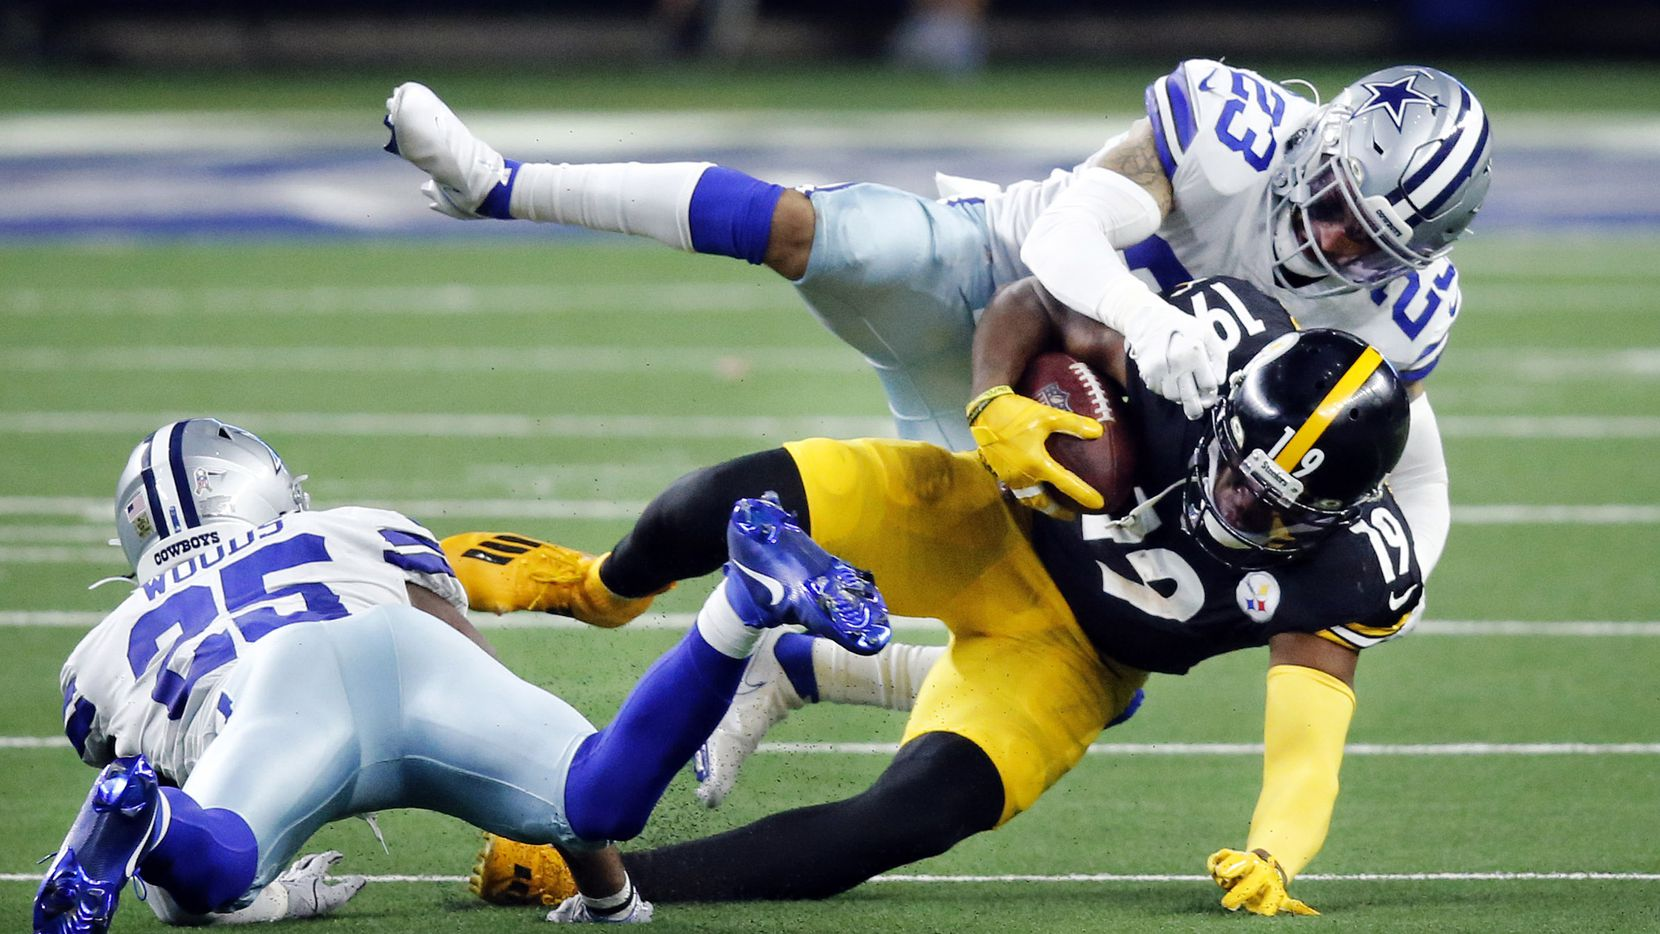 Pittsburgh Steelers wide receiver JuJu Smith-Schuster (19) is taken down by Dallas Cowboys strong safety Darian Thompson (23) and free safety Xavier Woods (25) during the third quarter at AT&T Stadium in Arlington, Texas Sunday, November 8, 2020.